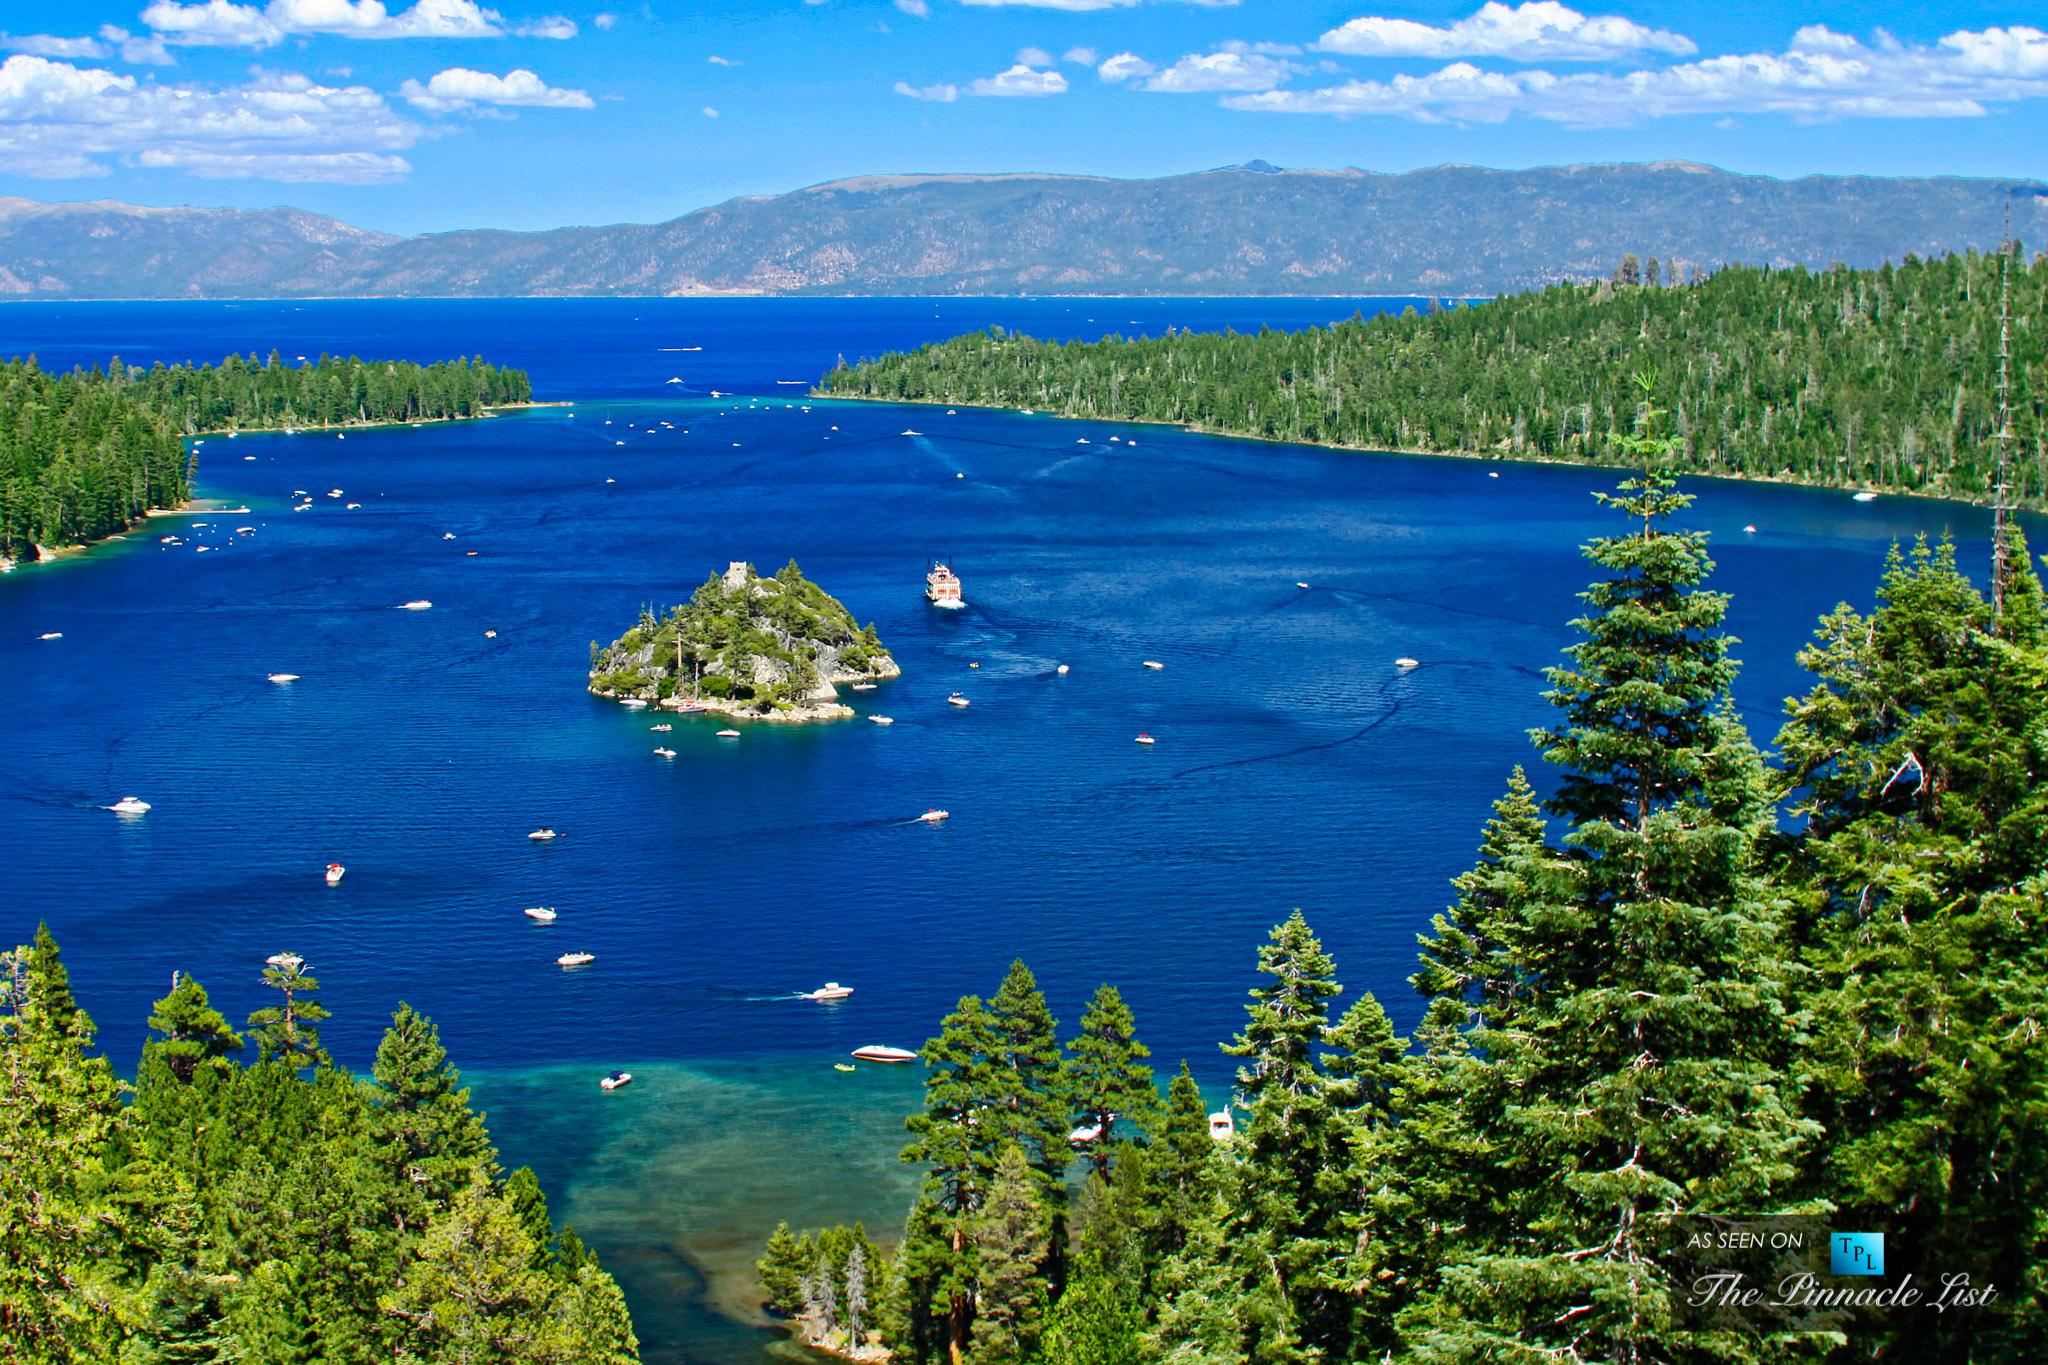 Summer - Ideal Season for a Picturesque Tahoe Wedding - Elevating Nuptials to a Higher Level - A Picturesque Lake Tahoe Wedding for Every Season